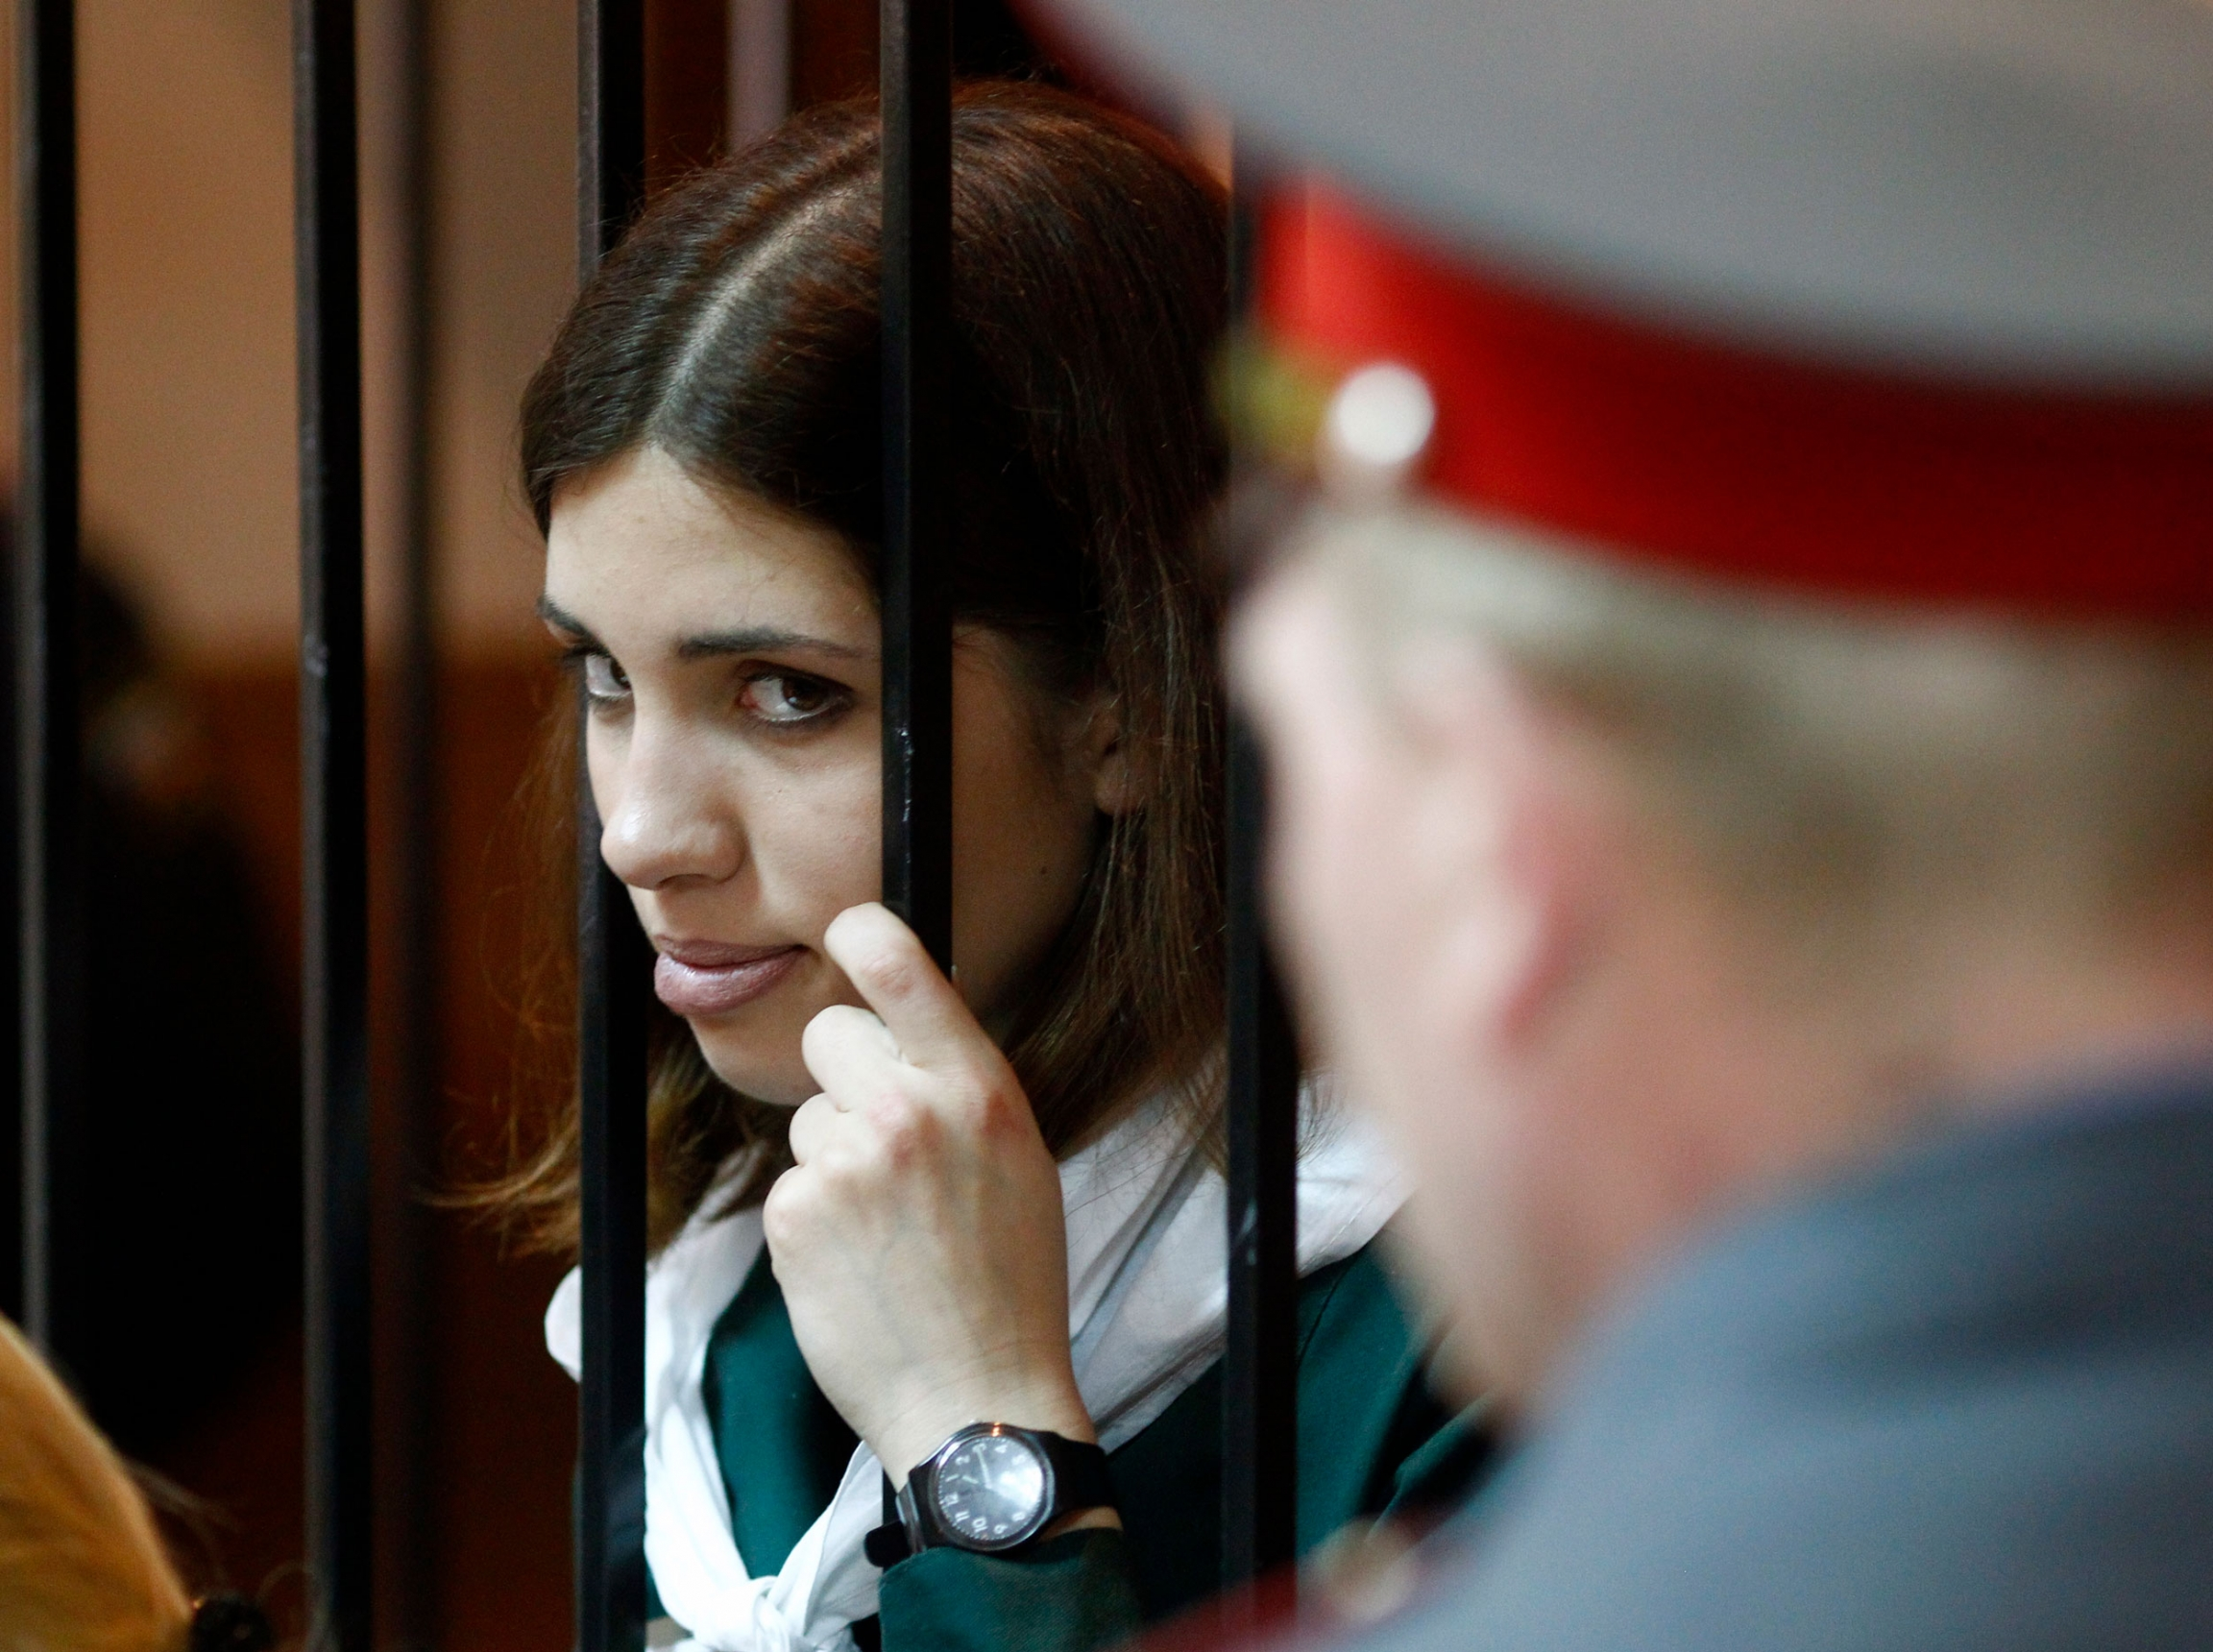 A young woman holds bars of a cell and peers out in a courtroom